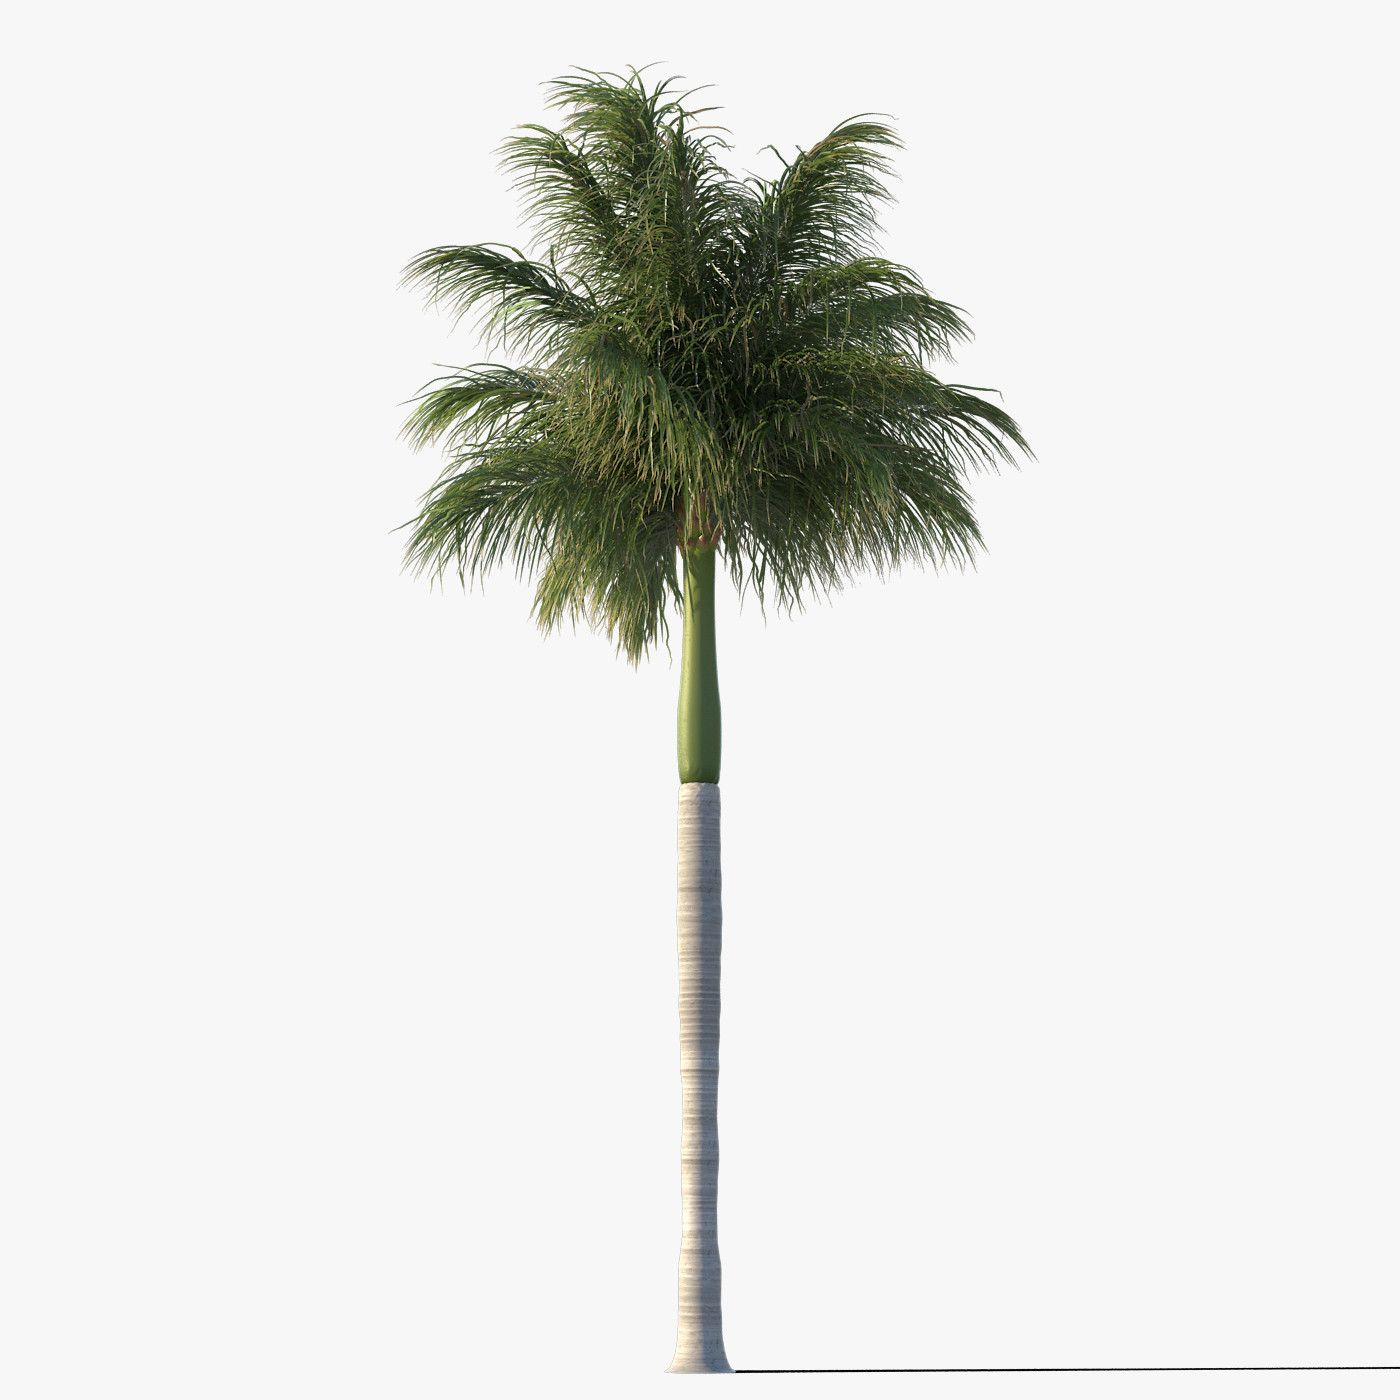 palm tree Palm trees always create a relaxed, resort style atmosphere wherever they are planted we're fortunate to live in a part of the country where palms can be grown easily and can be adapted to most landscape styles.